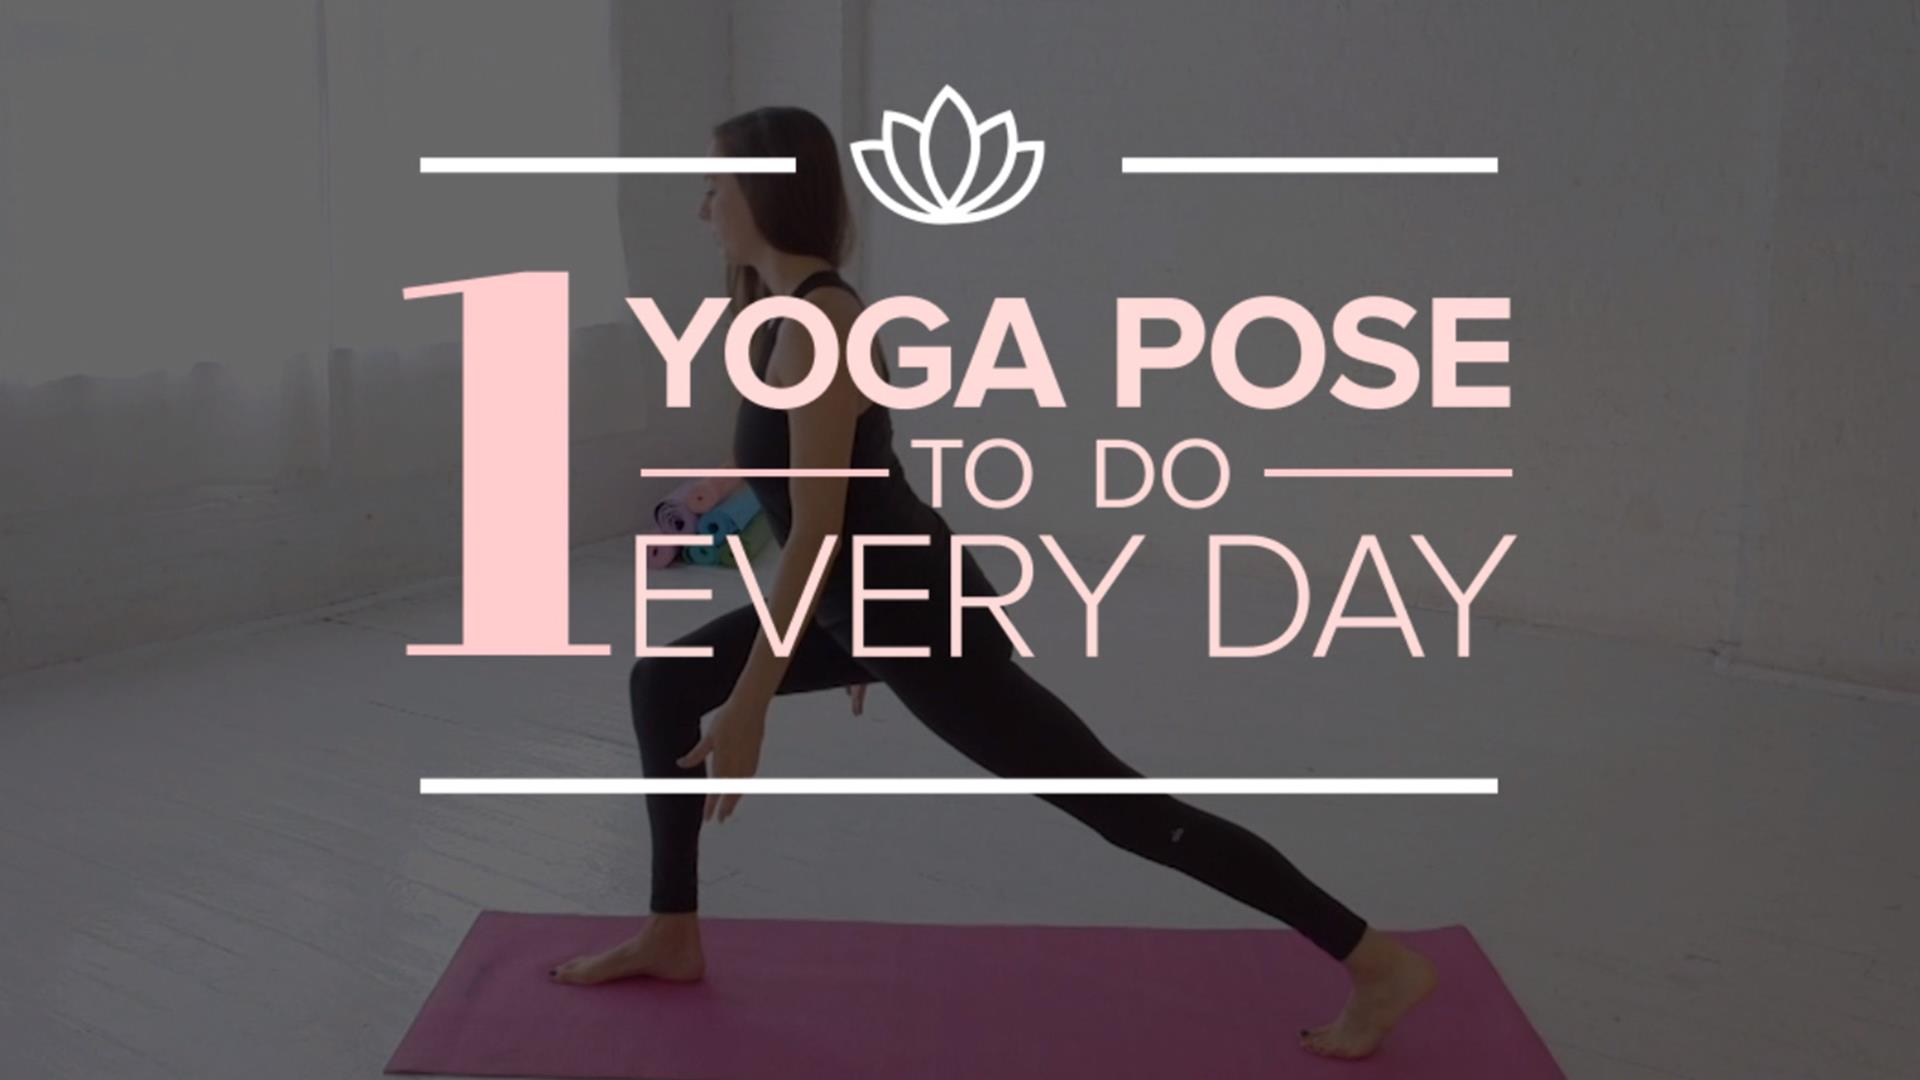 Bathroom Yoga Poses the 1 yoga pose to do every day - today